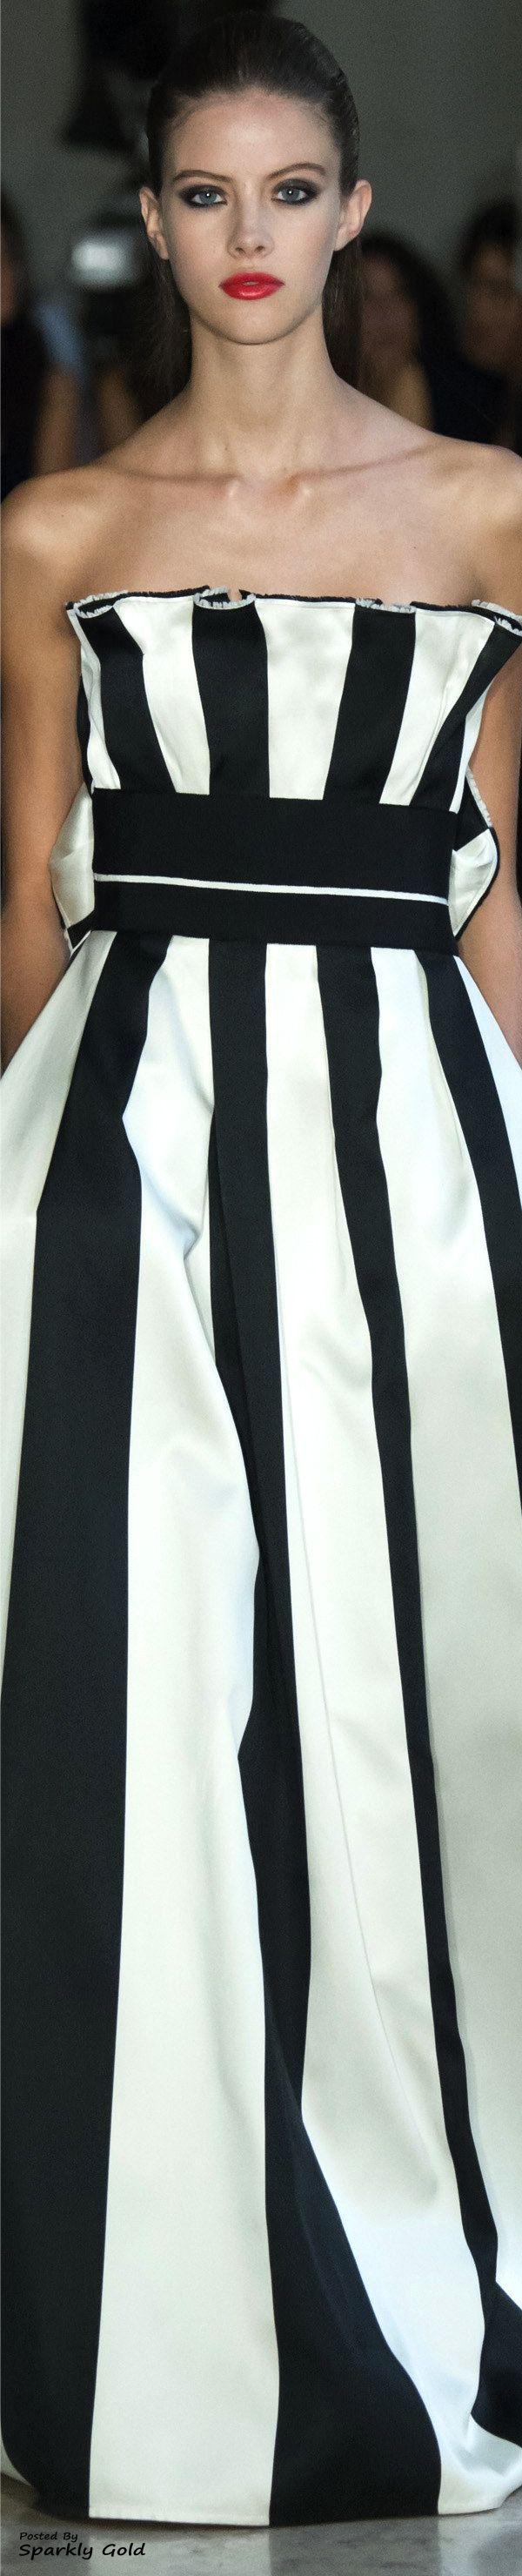 1084 best black and white fashions images on pinterest black